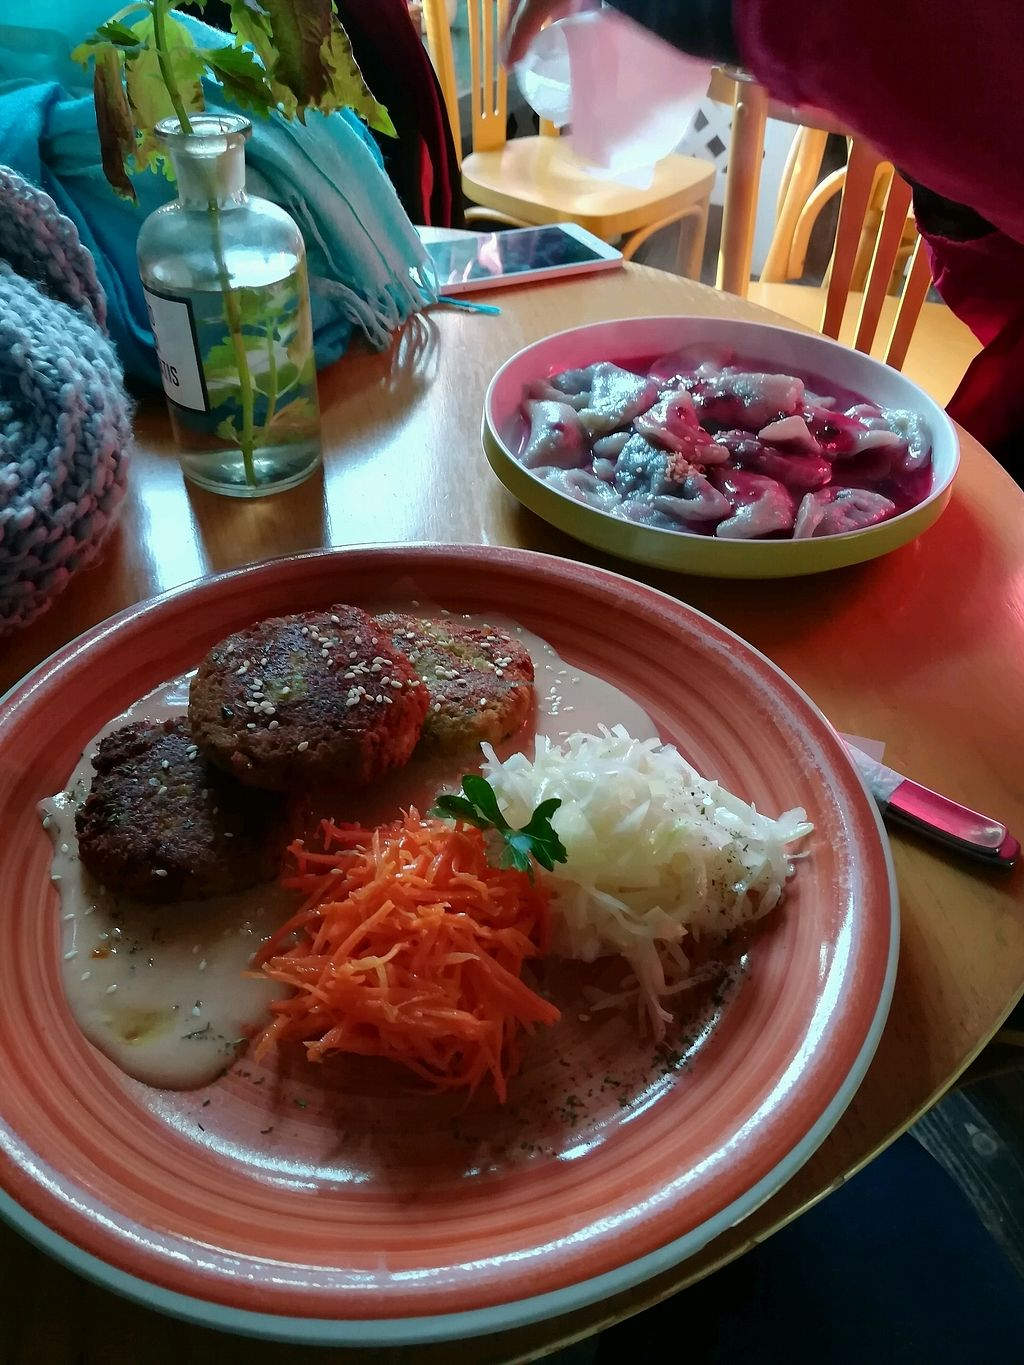 "Photo of Arbatine  by <a href=""/members/profile/LucyKing"">LucyKing</a> <br/>Falafel and Dumplings <br/> January 16, 2018  - <a href='/contact/abuse/image/16477/347229'>Report</a>"